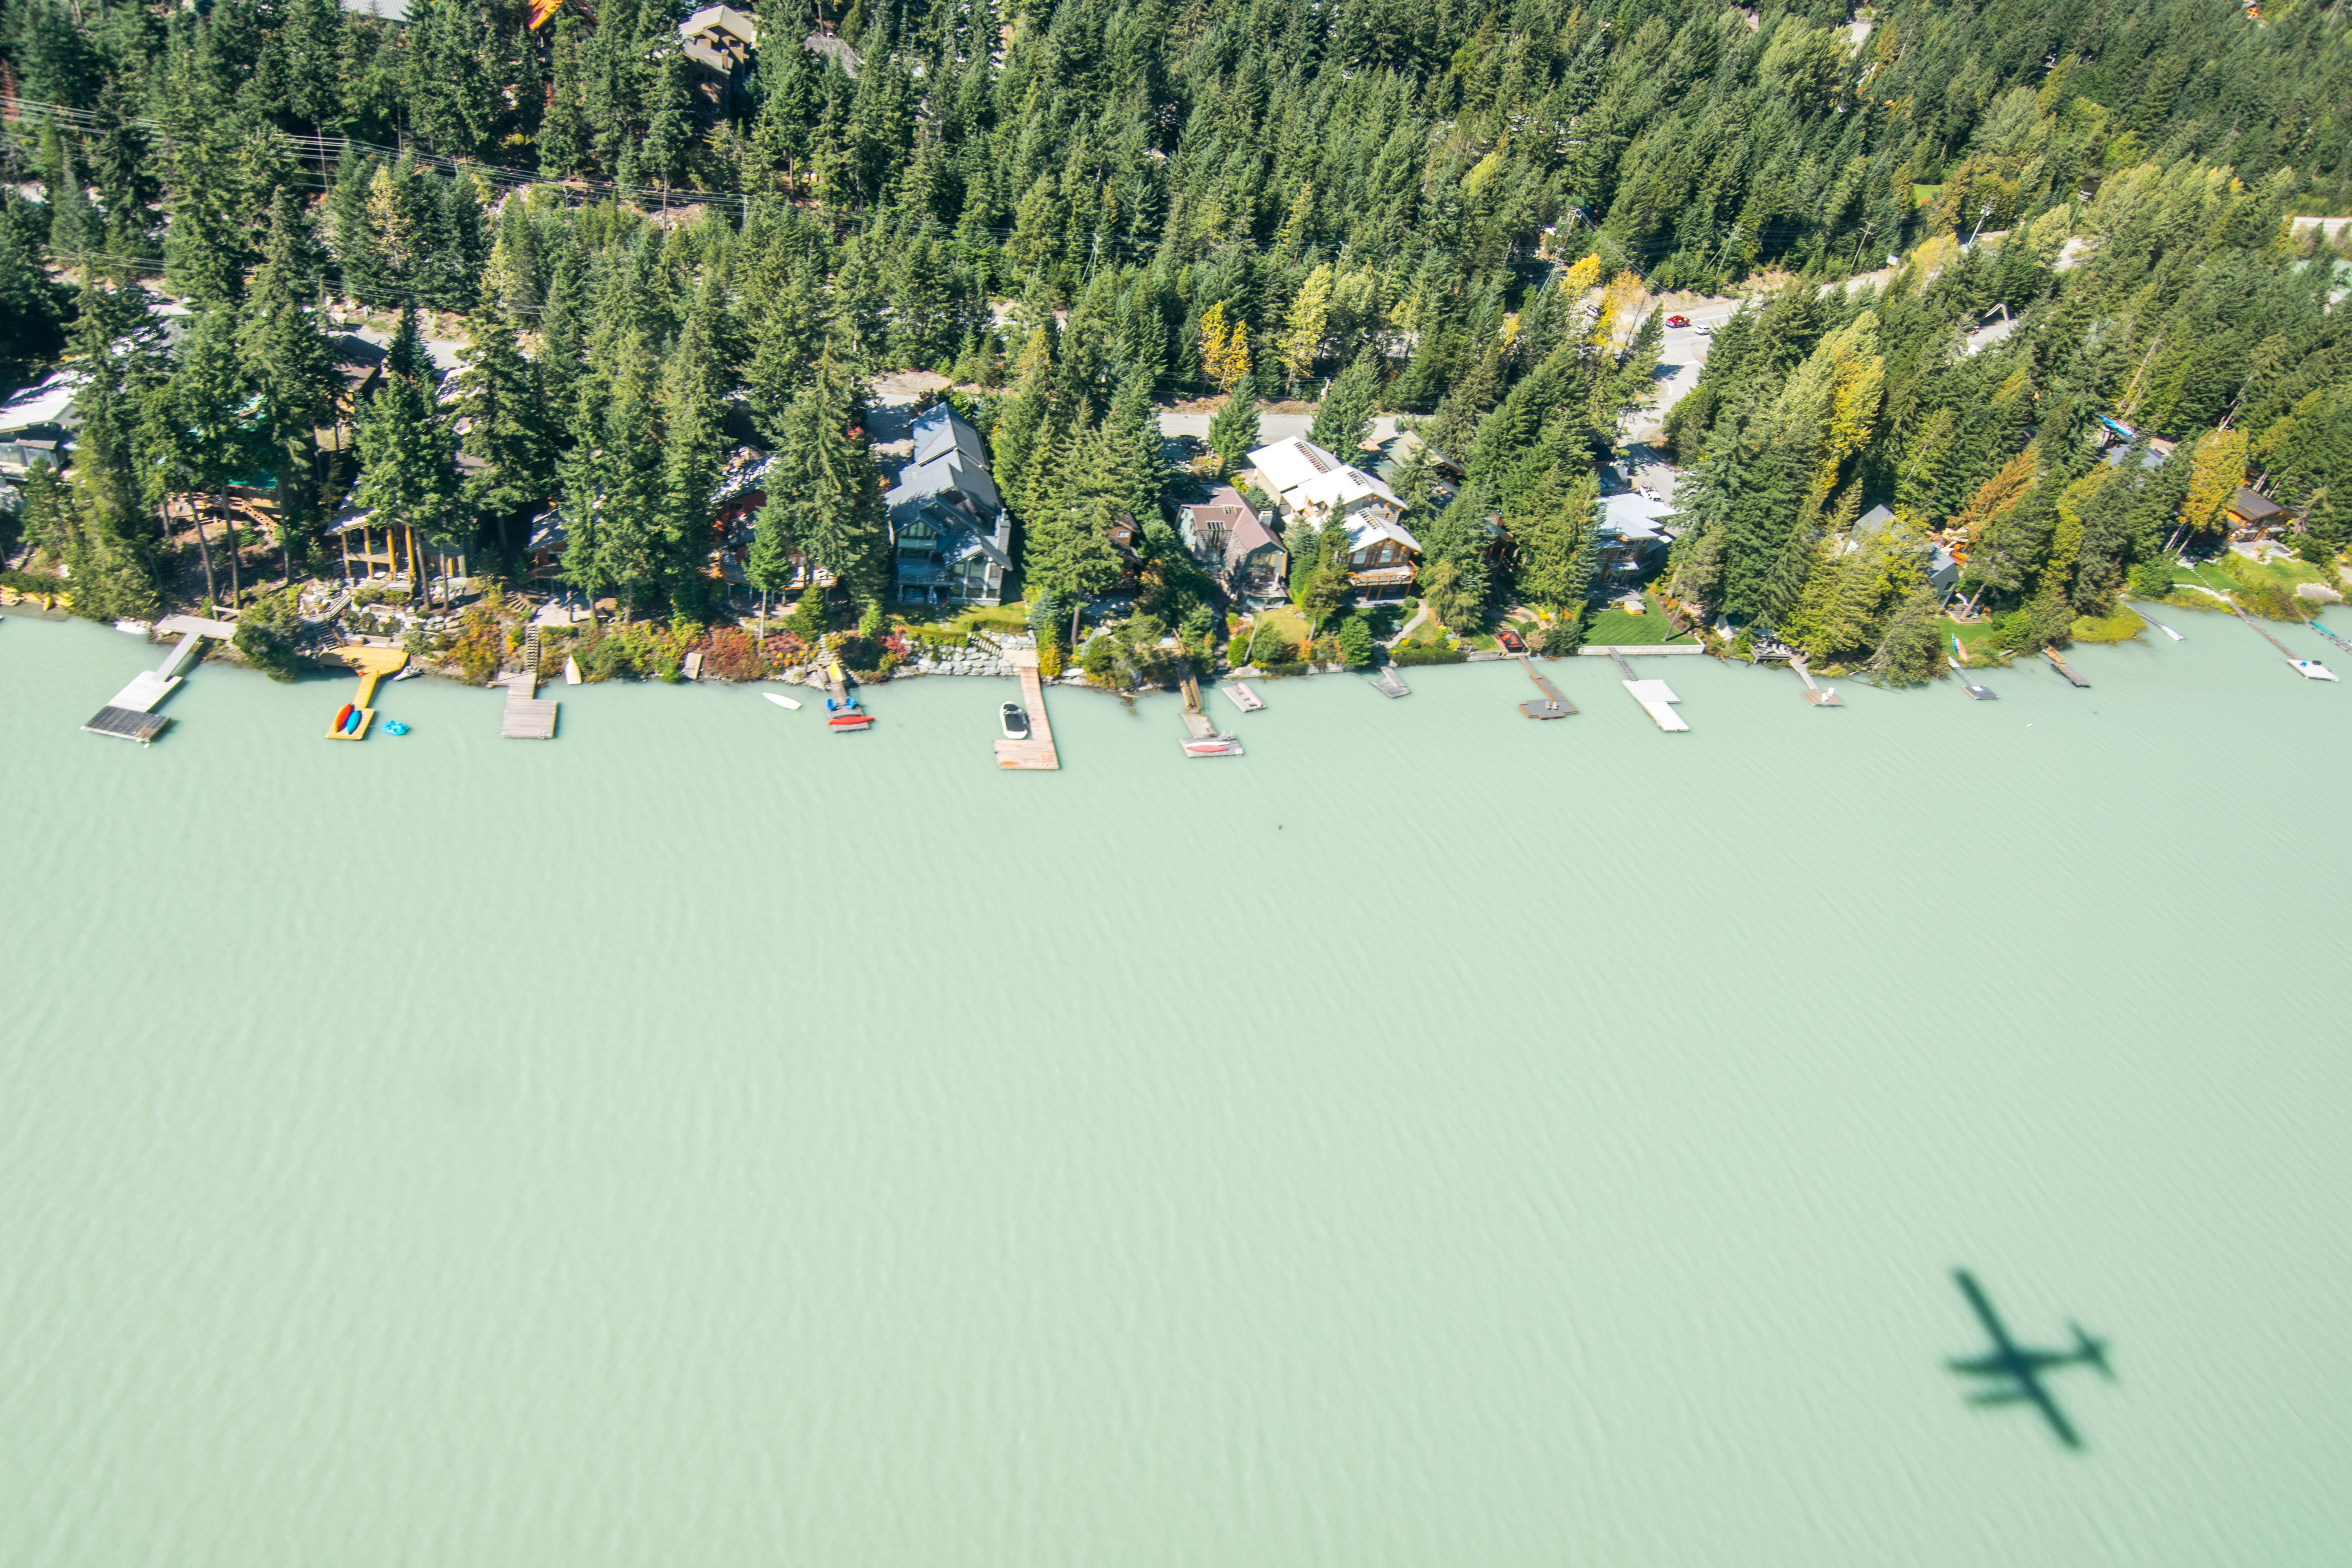 How to Spend 1 Day in Whistler